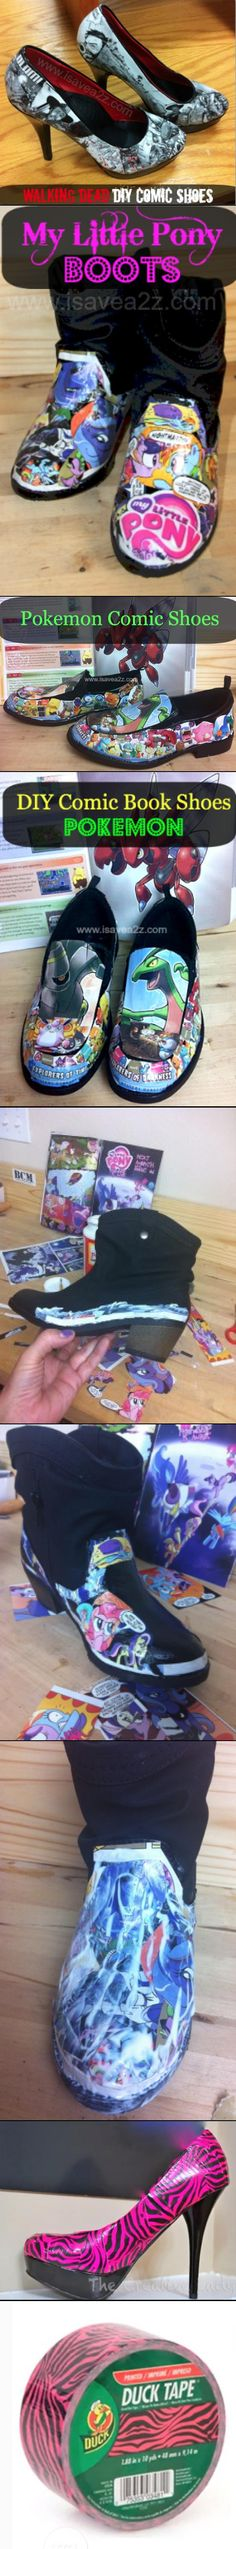 Comic Book Shoes!  We have Walking Dead, Pokemon and My Little Pony too!!!  Tutorial included!!!  Super Fun Project idea!!!